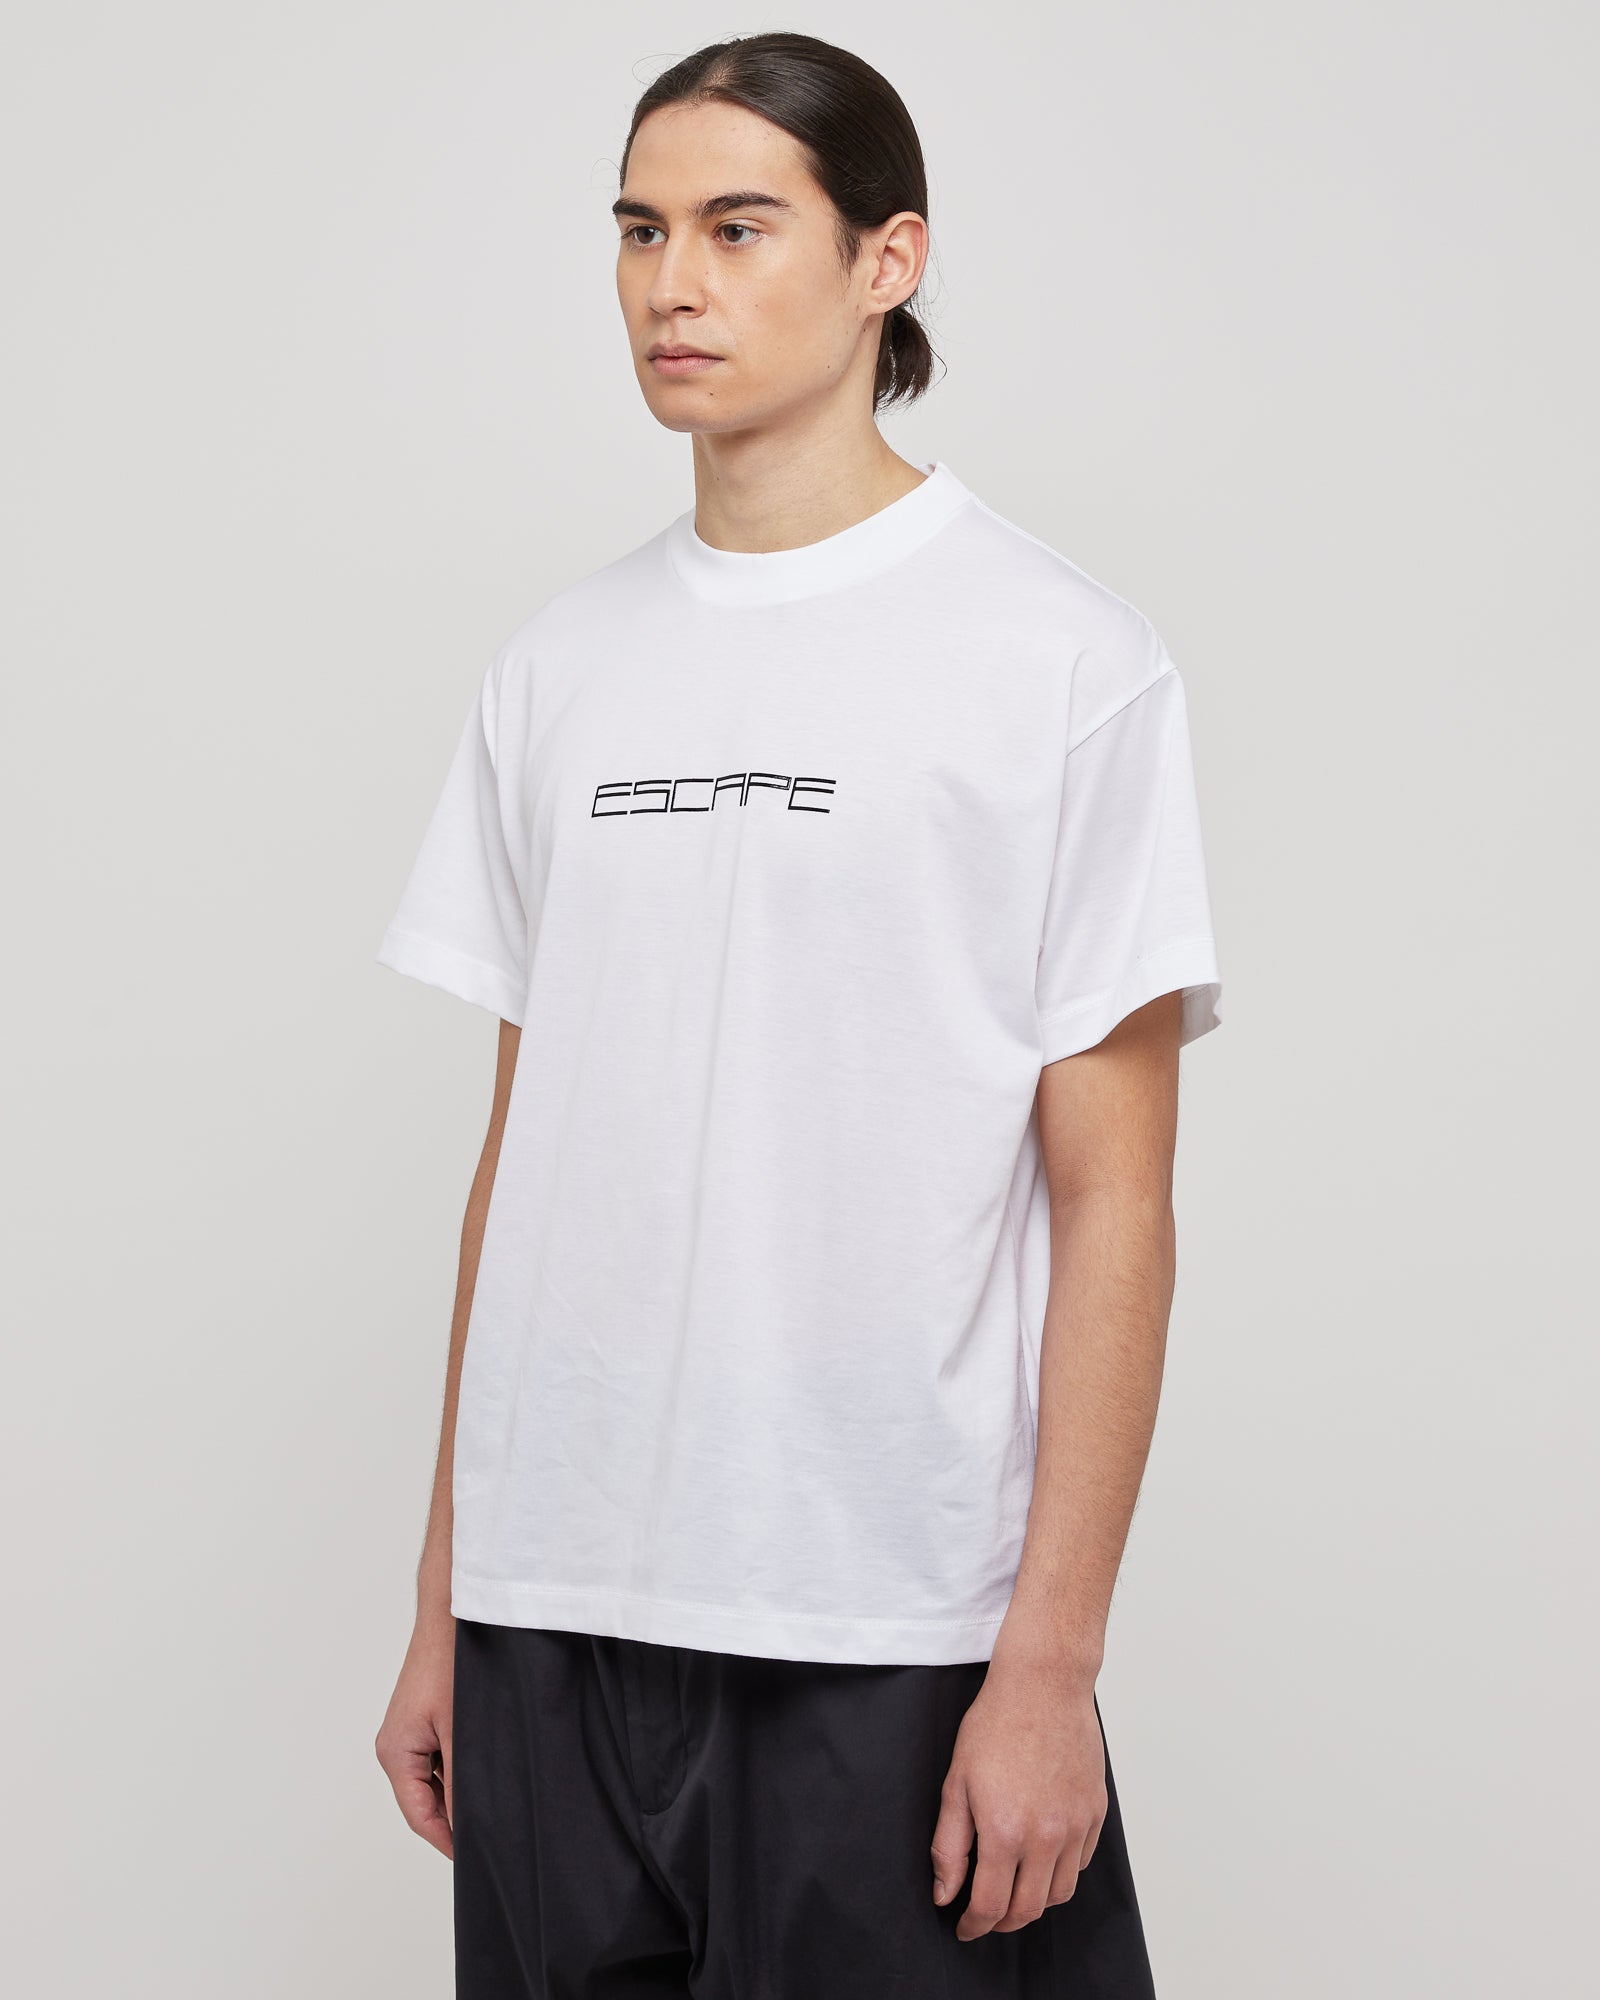 Escape T-Shirt in White